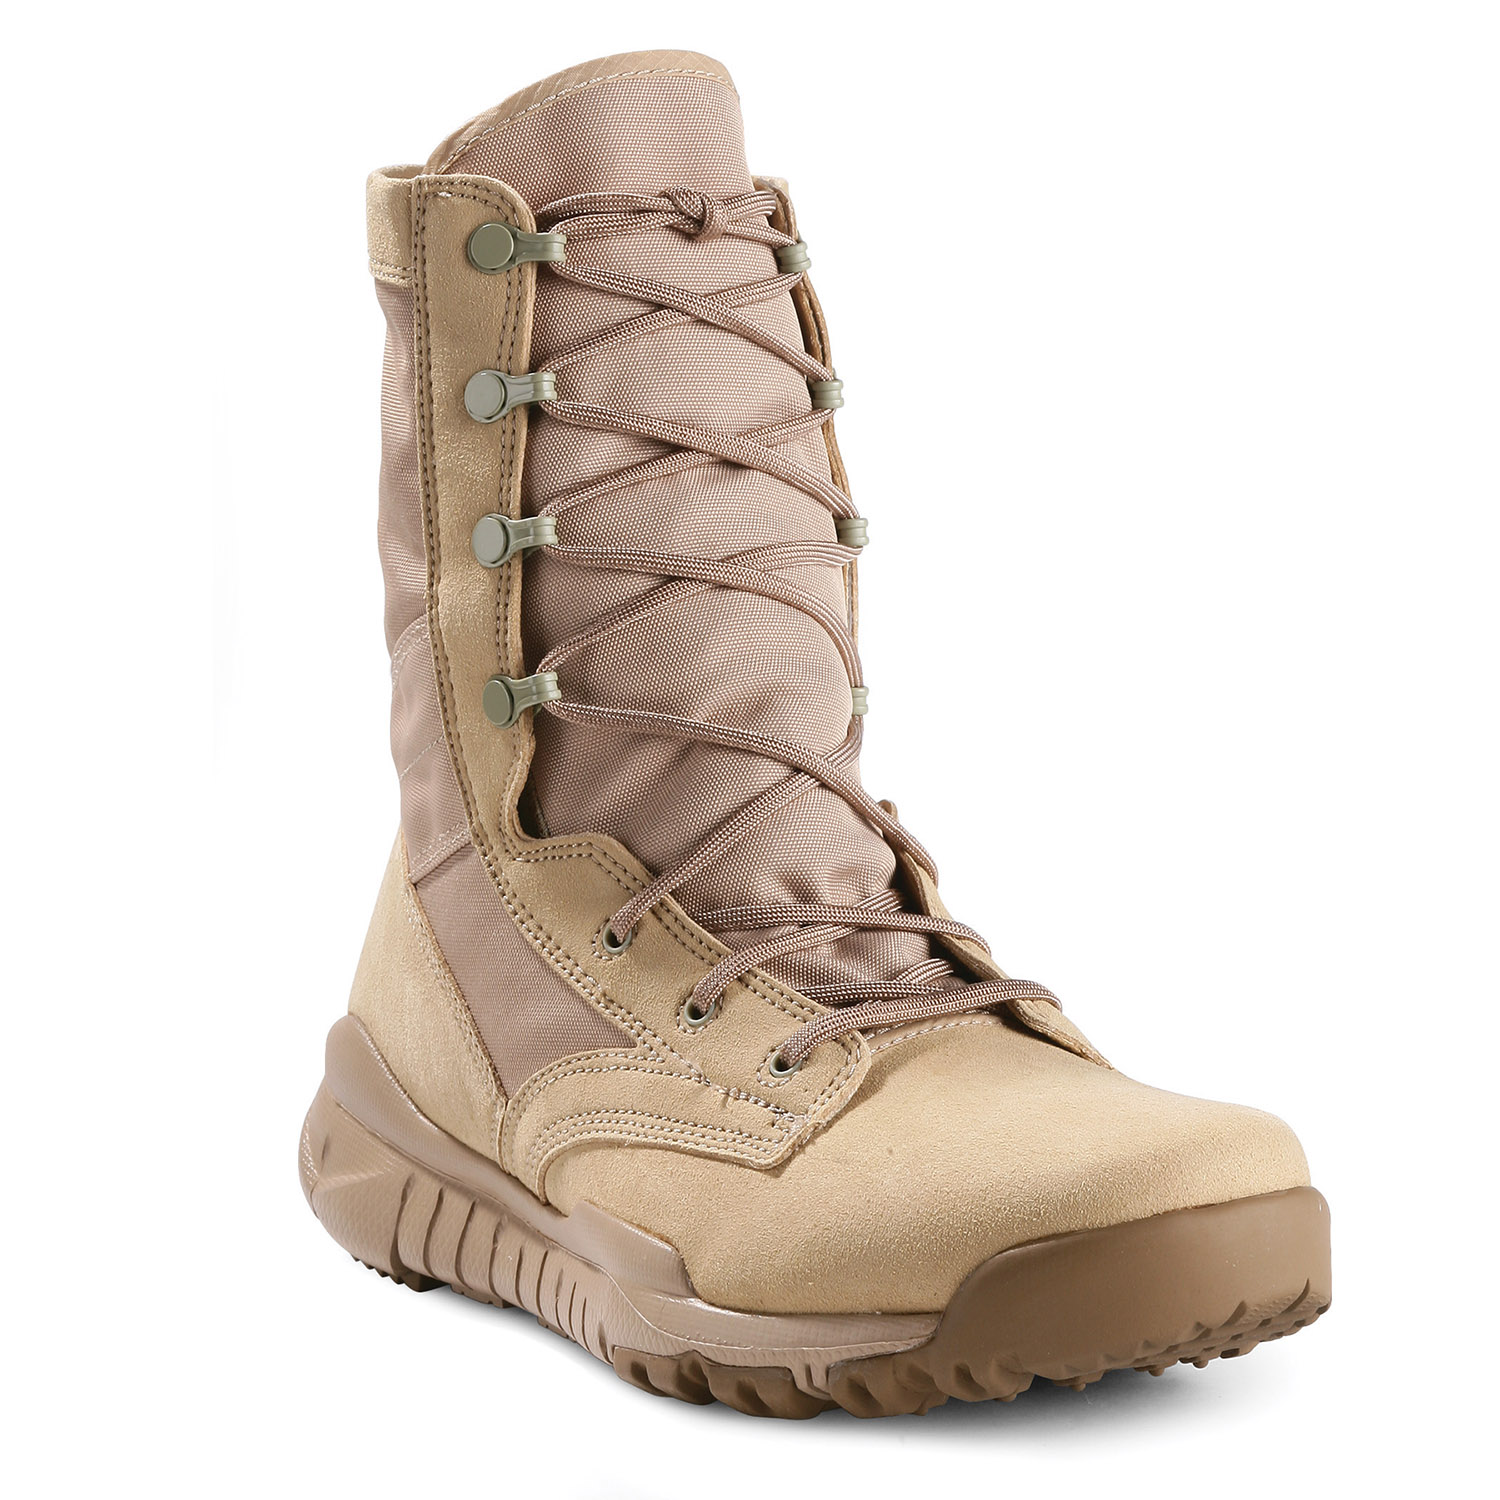 coyote oakley boots 56vf  nike free army boots